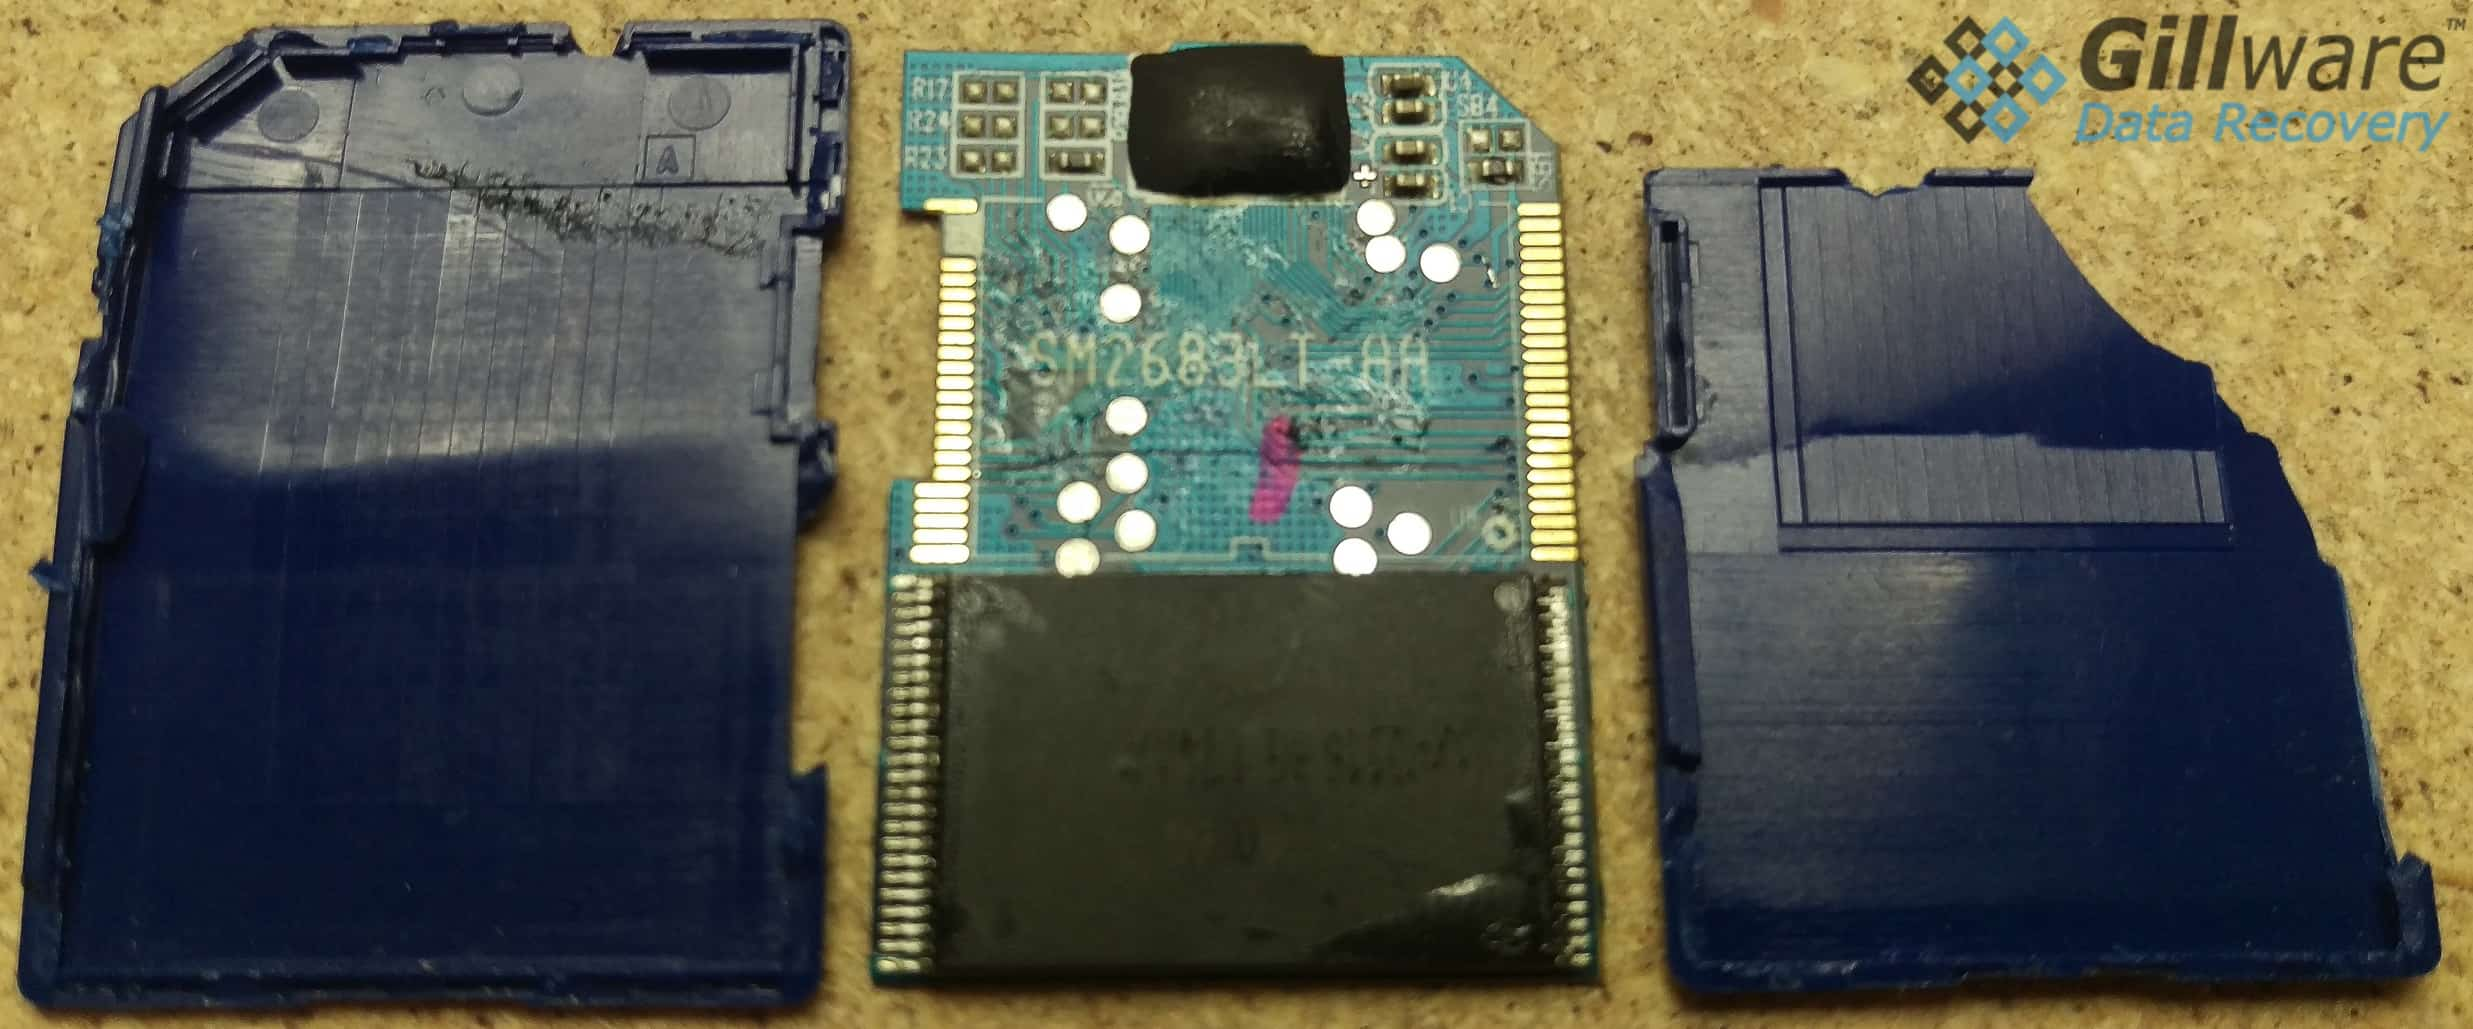 The inside of a damaged SD card. There is a visible crack in the PCB. Our SD card recovery service engineers were able to remove the NAND chip and extract its contents.